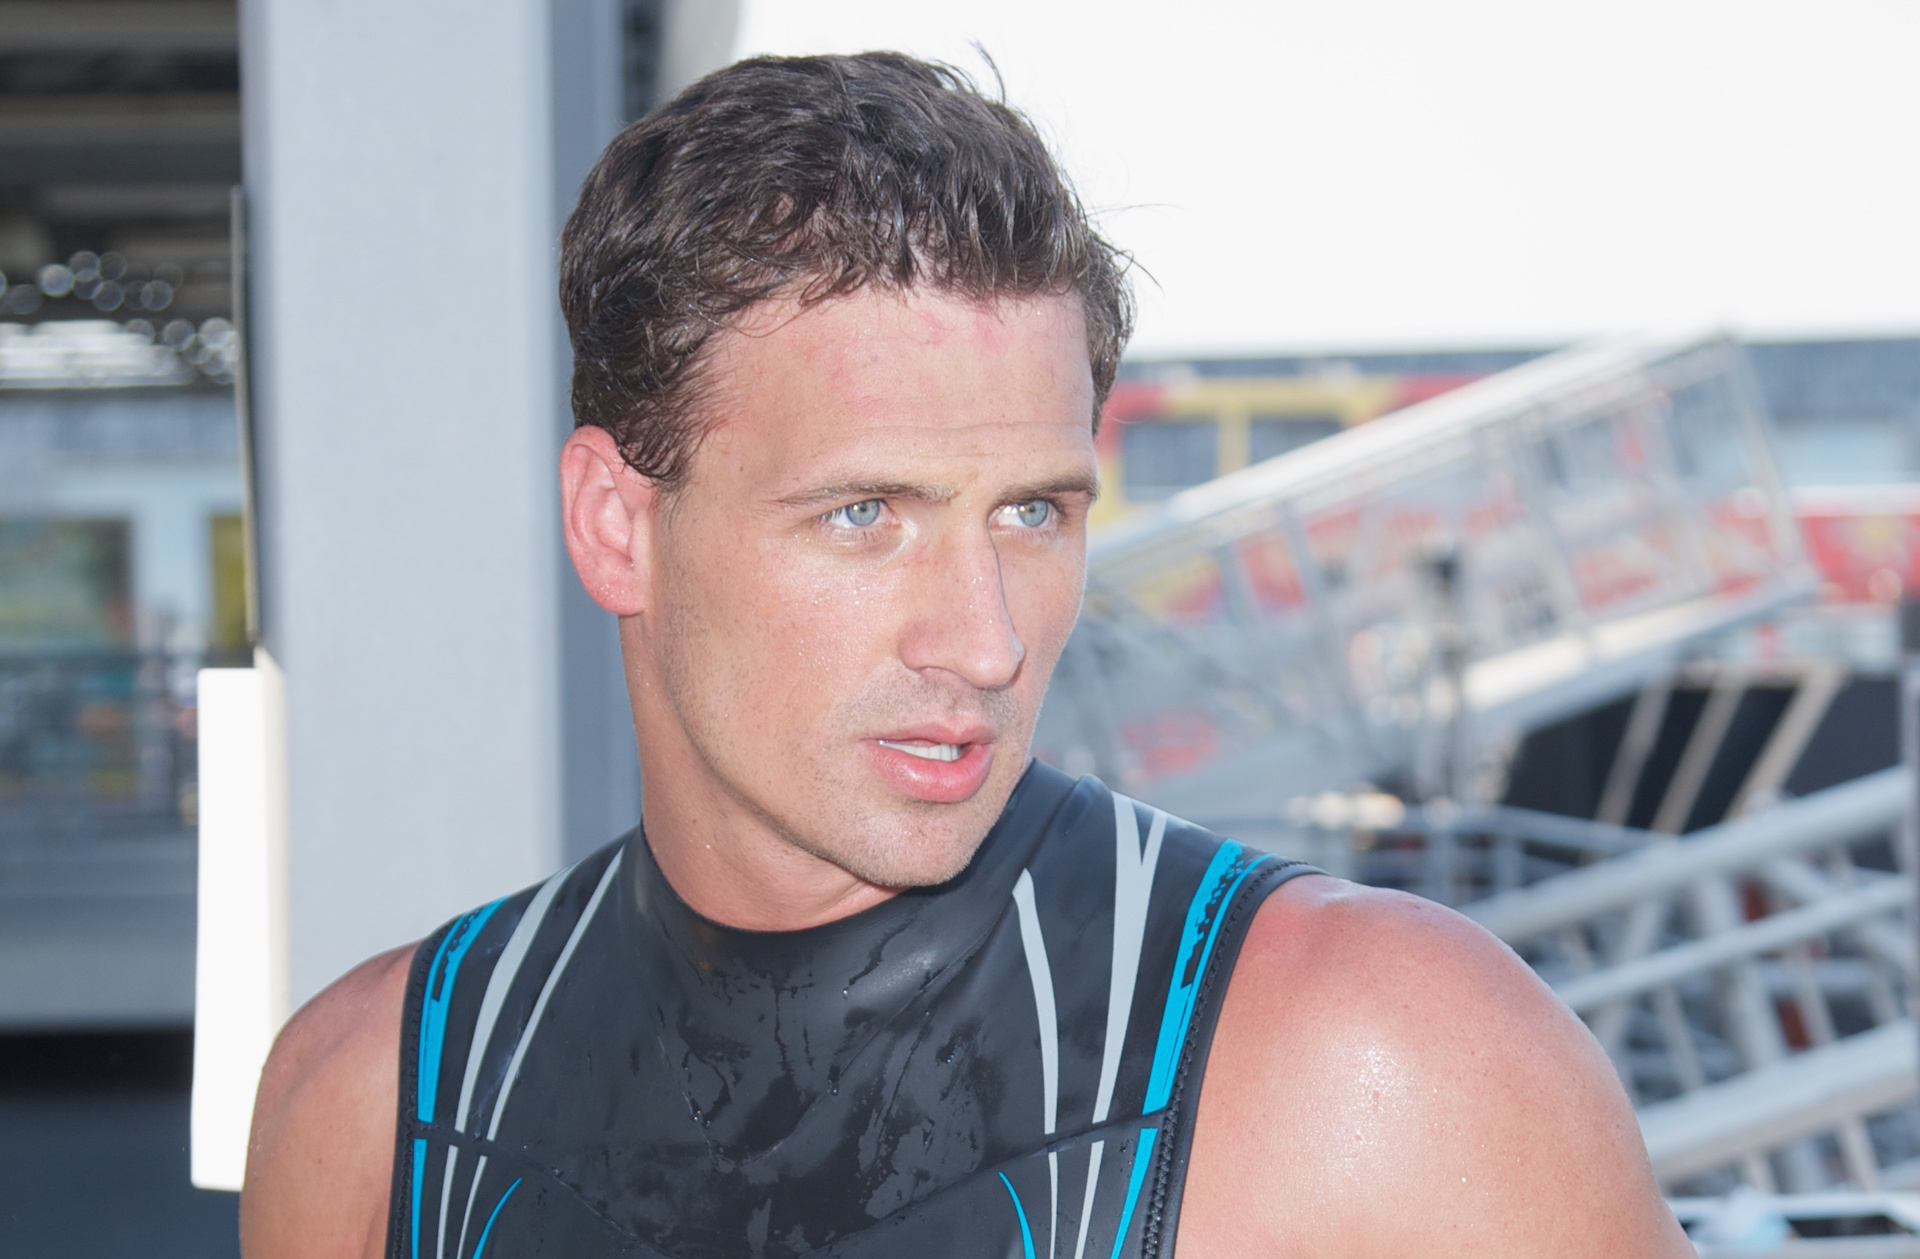 ryan lochte robbery claim on instagram